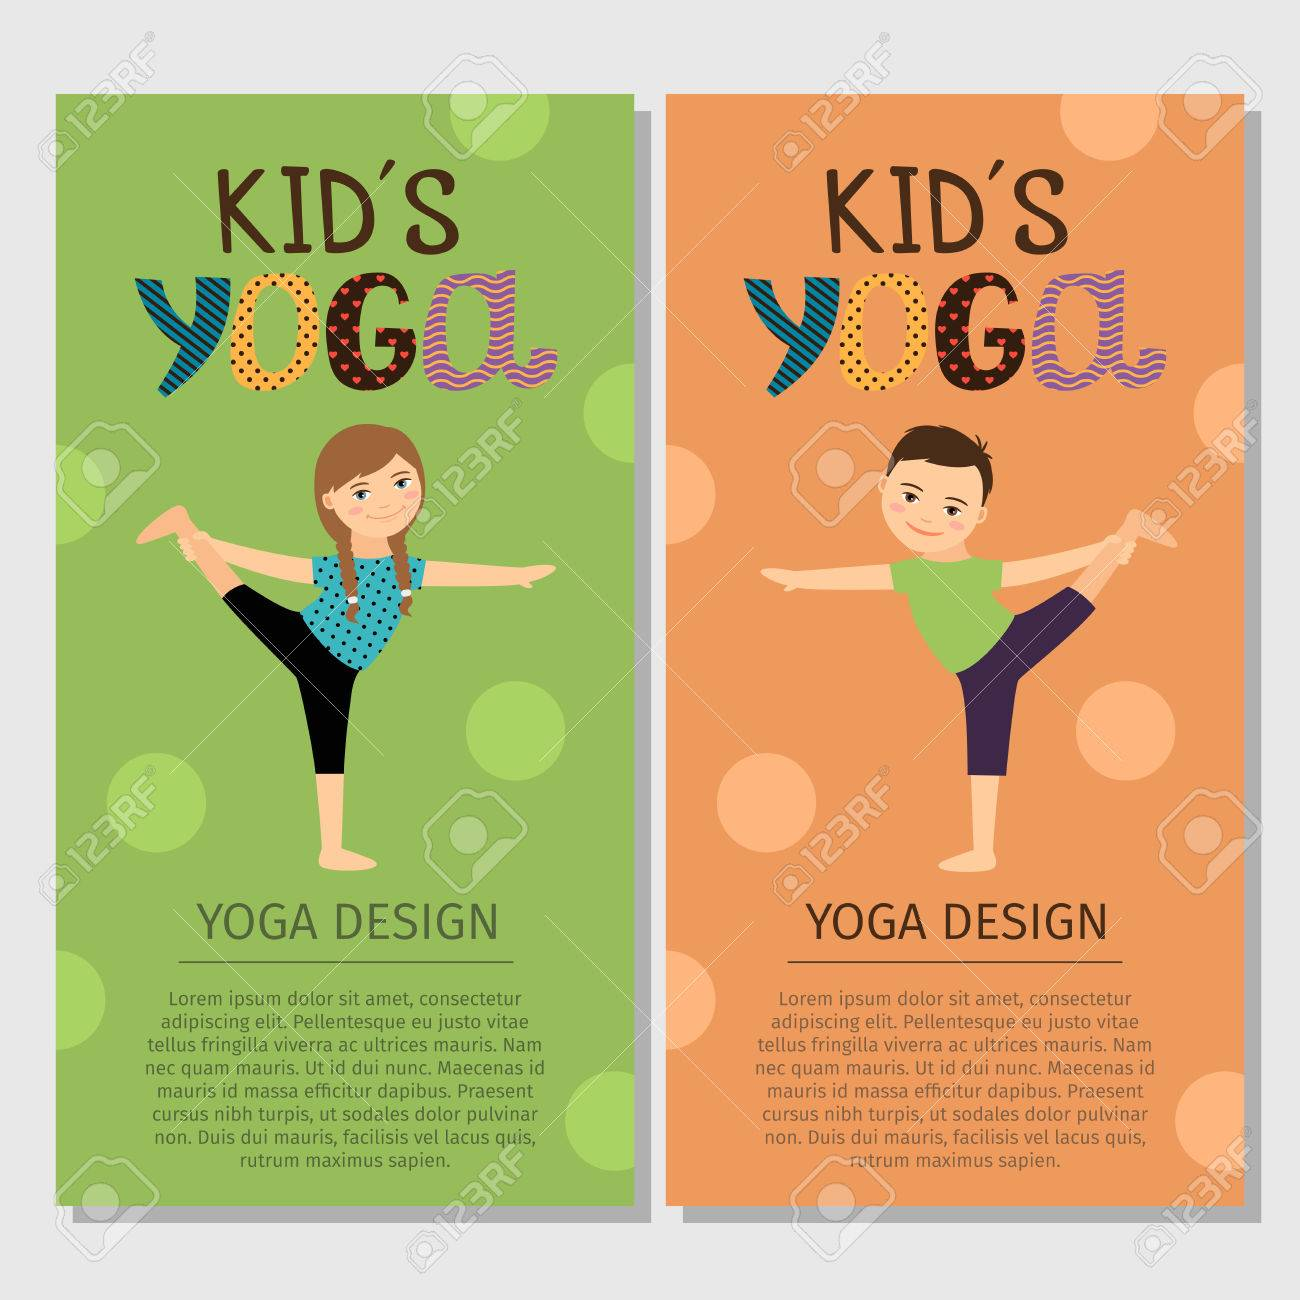 Yoga Kids Vertical Flyer Design With Girl And Boy Vector